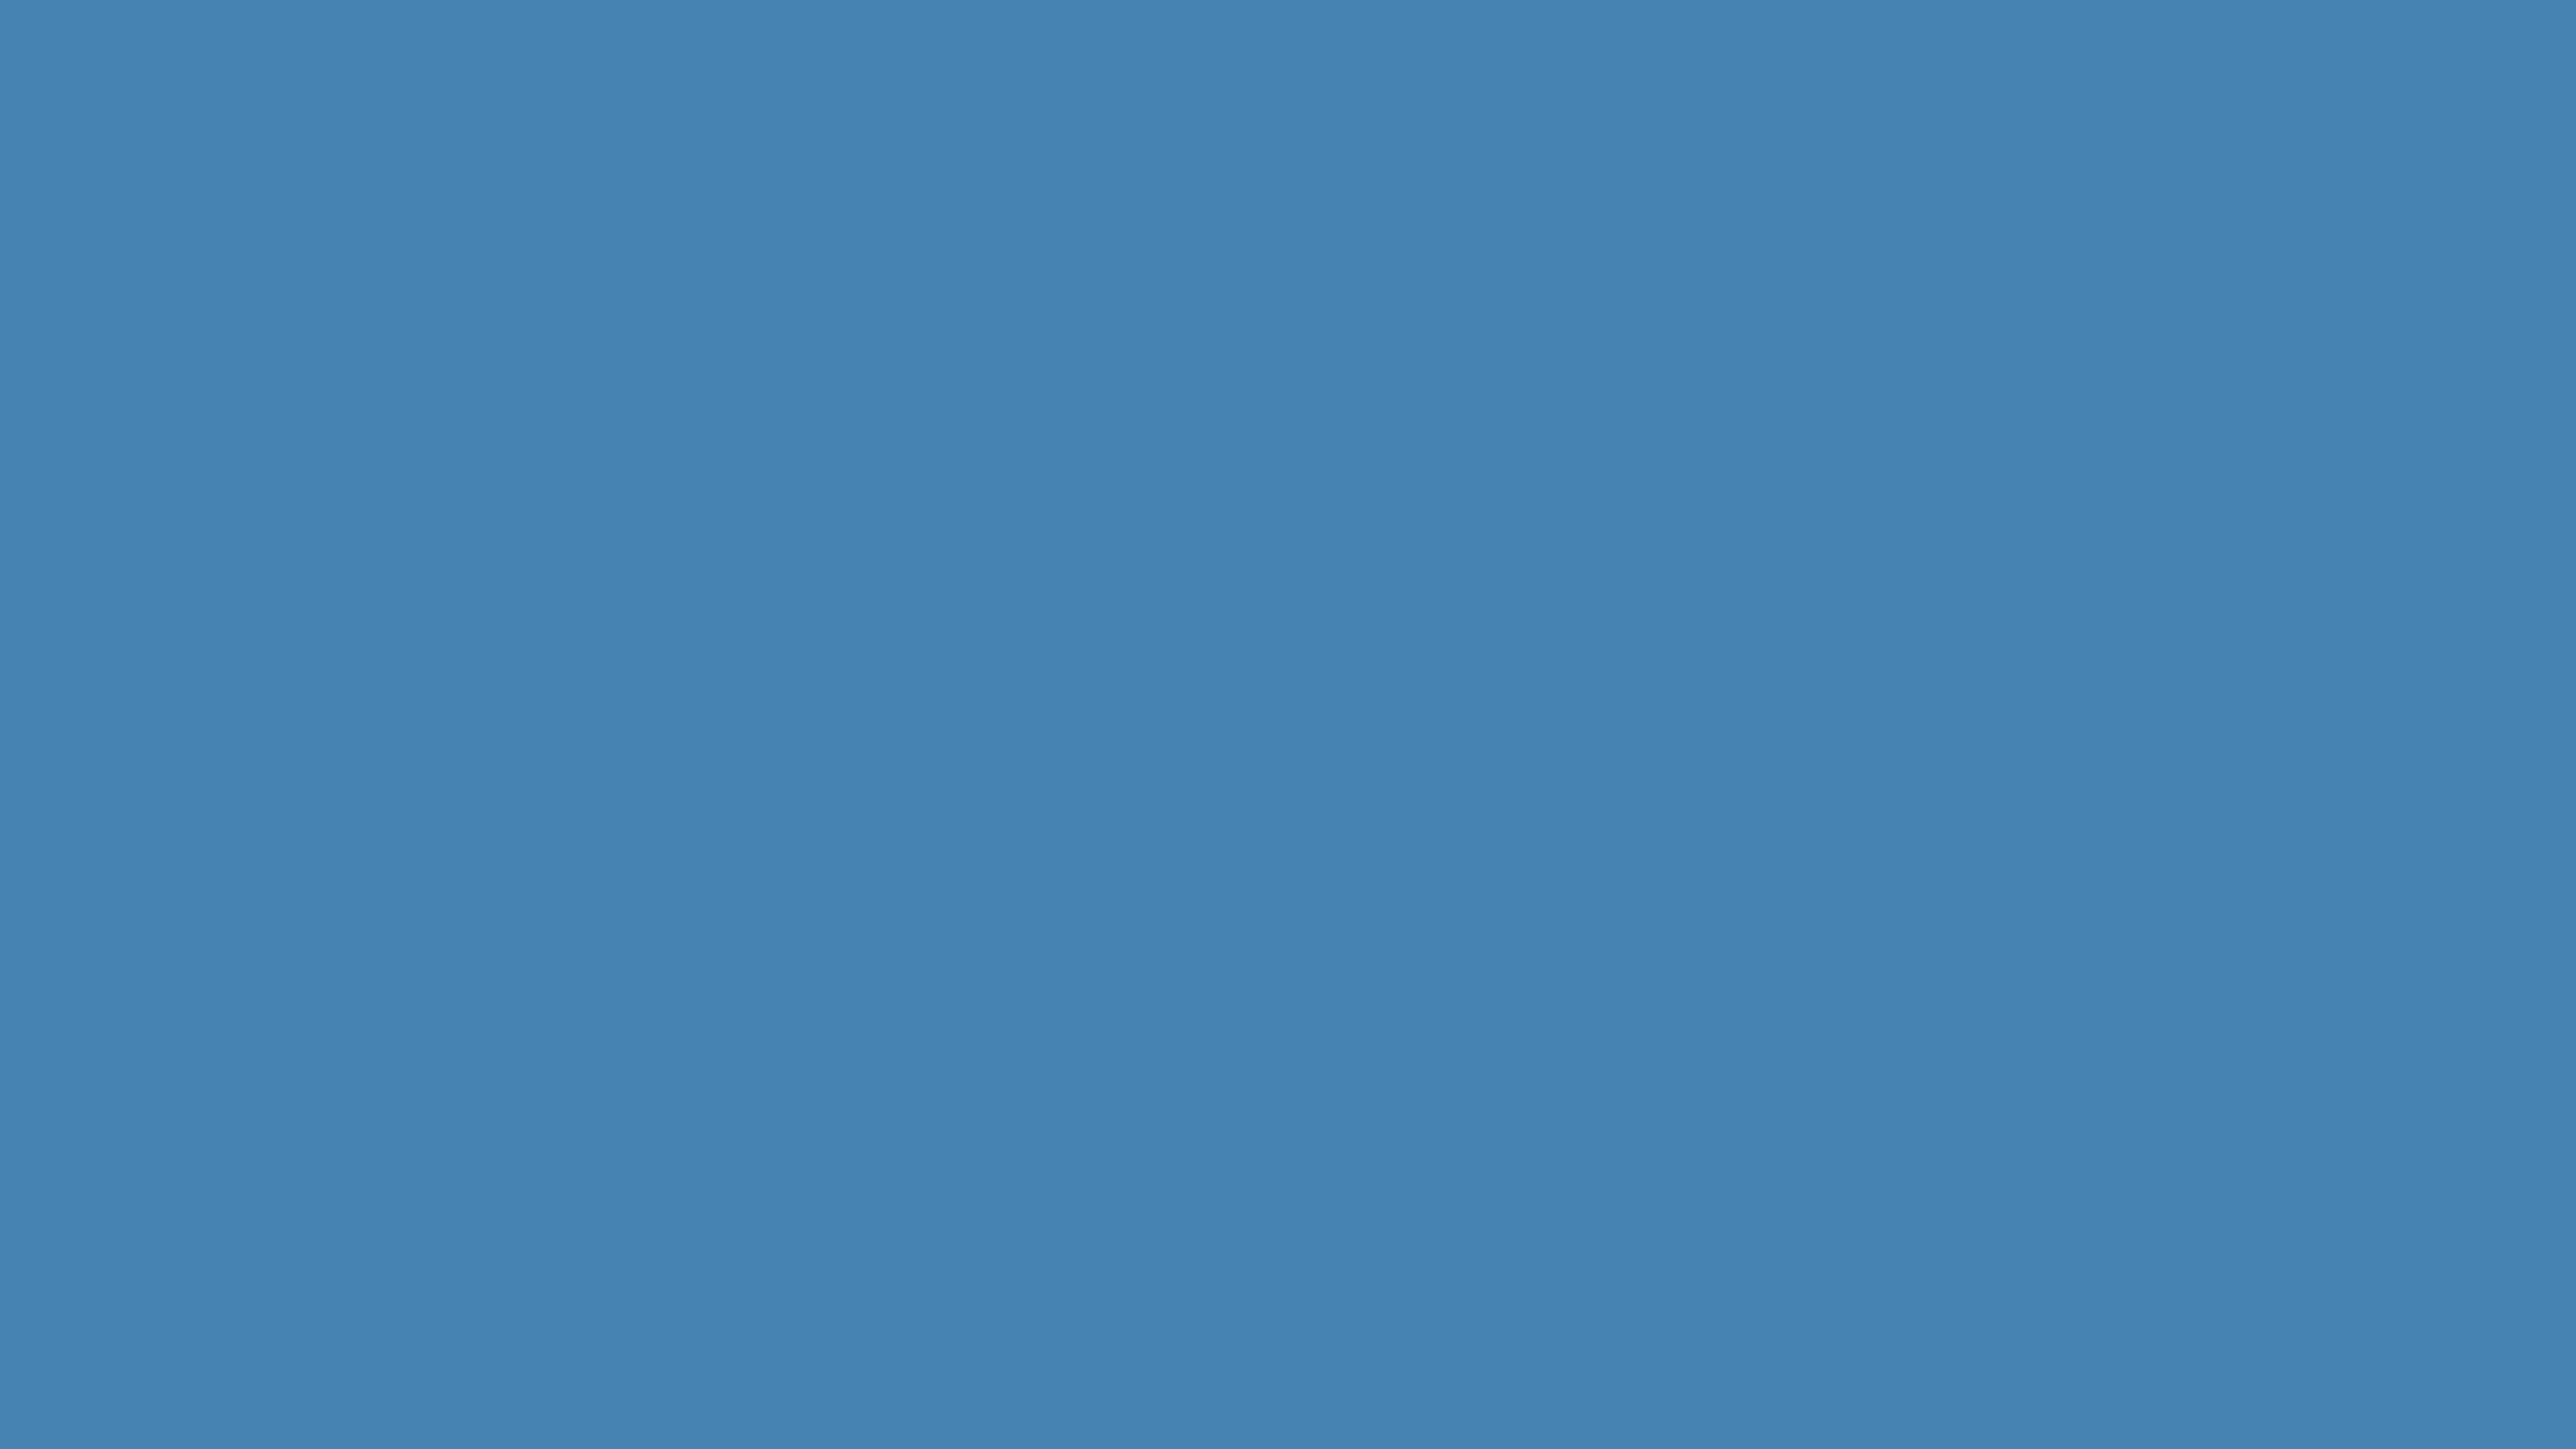 4096x2304 Steel Blue Solid Color Background